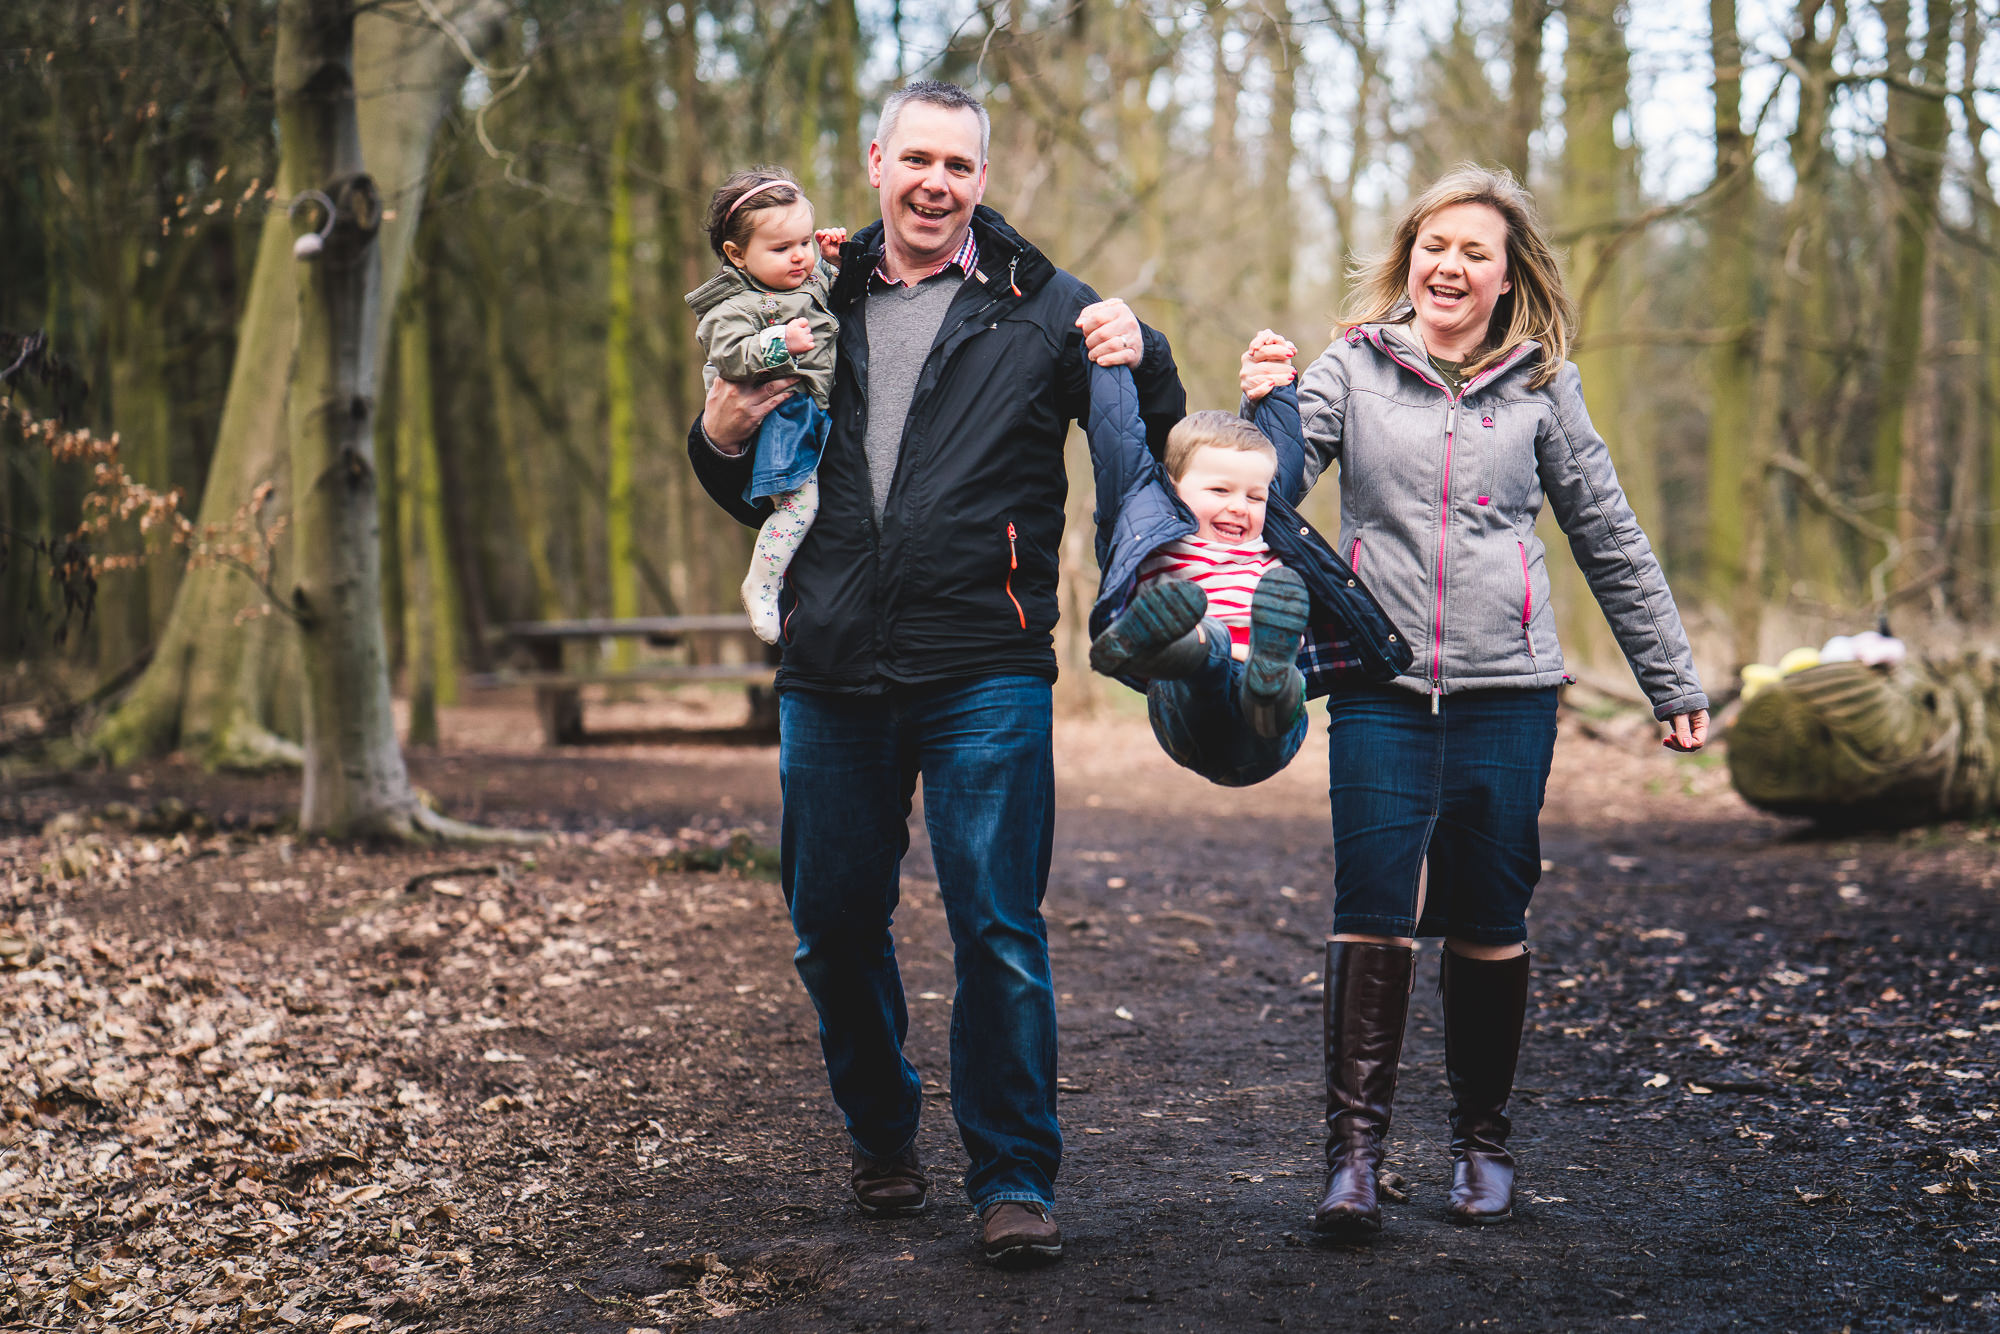 chicksands wood campton plantation bedfordshire family shoot-1130.jpg